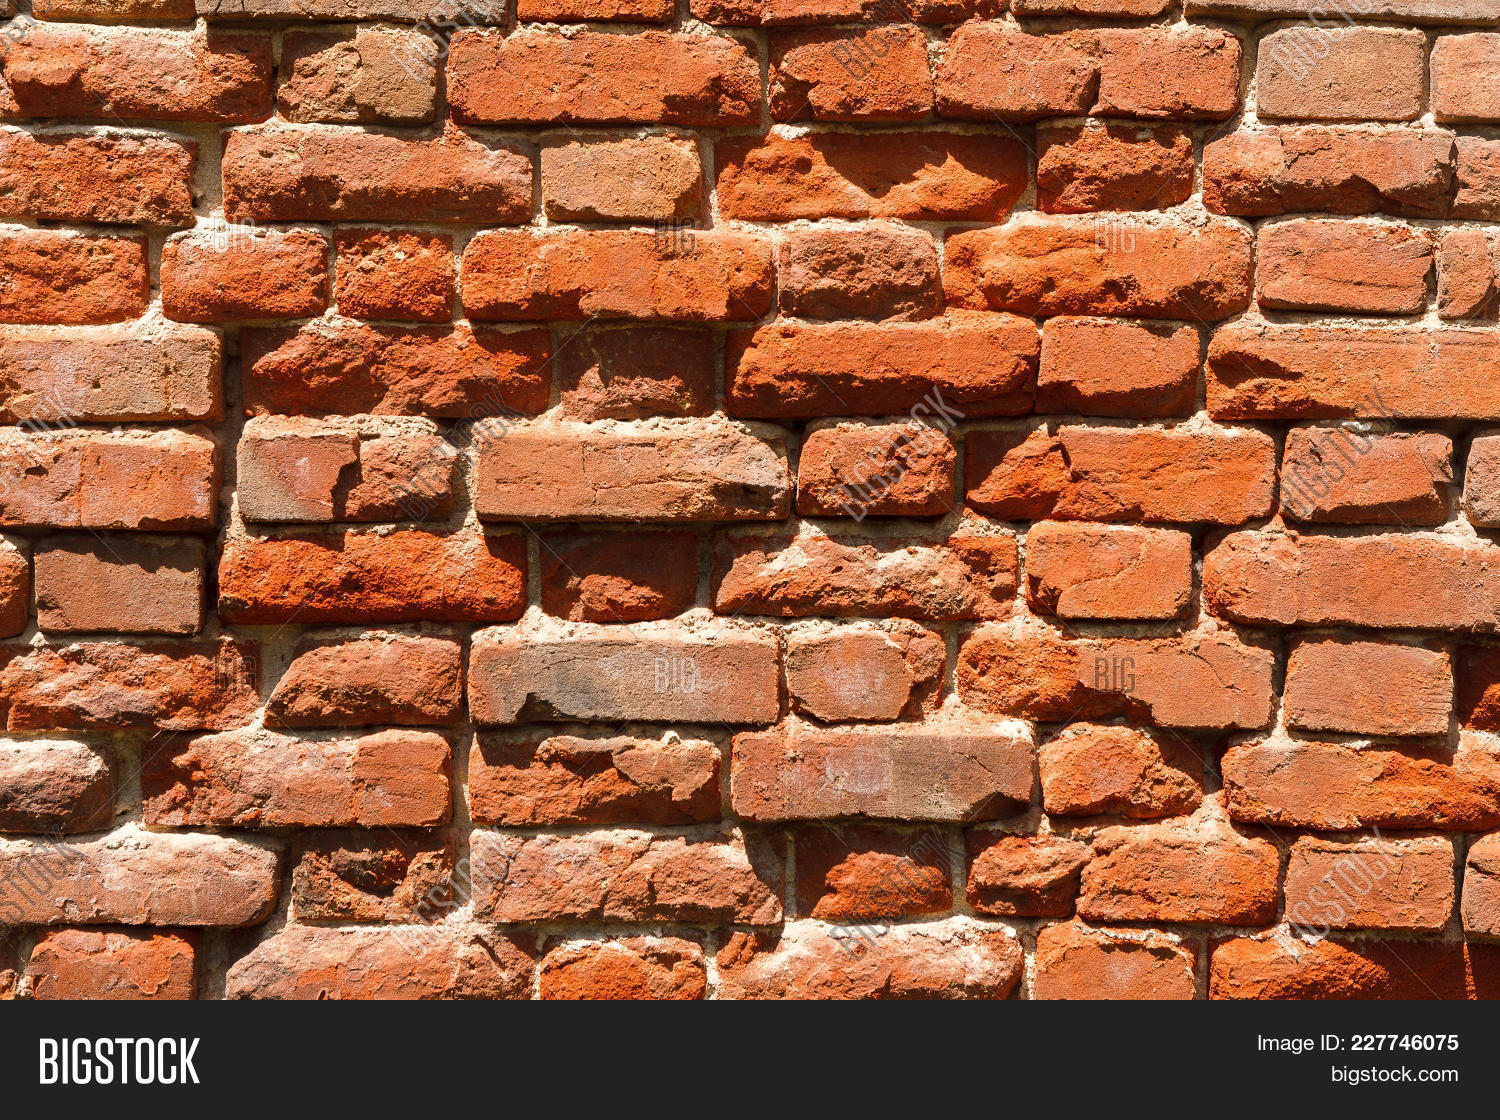 Red Rustic Brick Wall Background Modern Smooth Decorative False Bricks Texture Brickwall Stucco Su